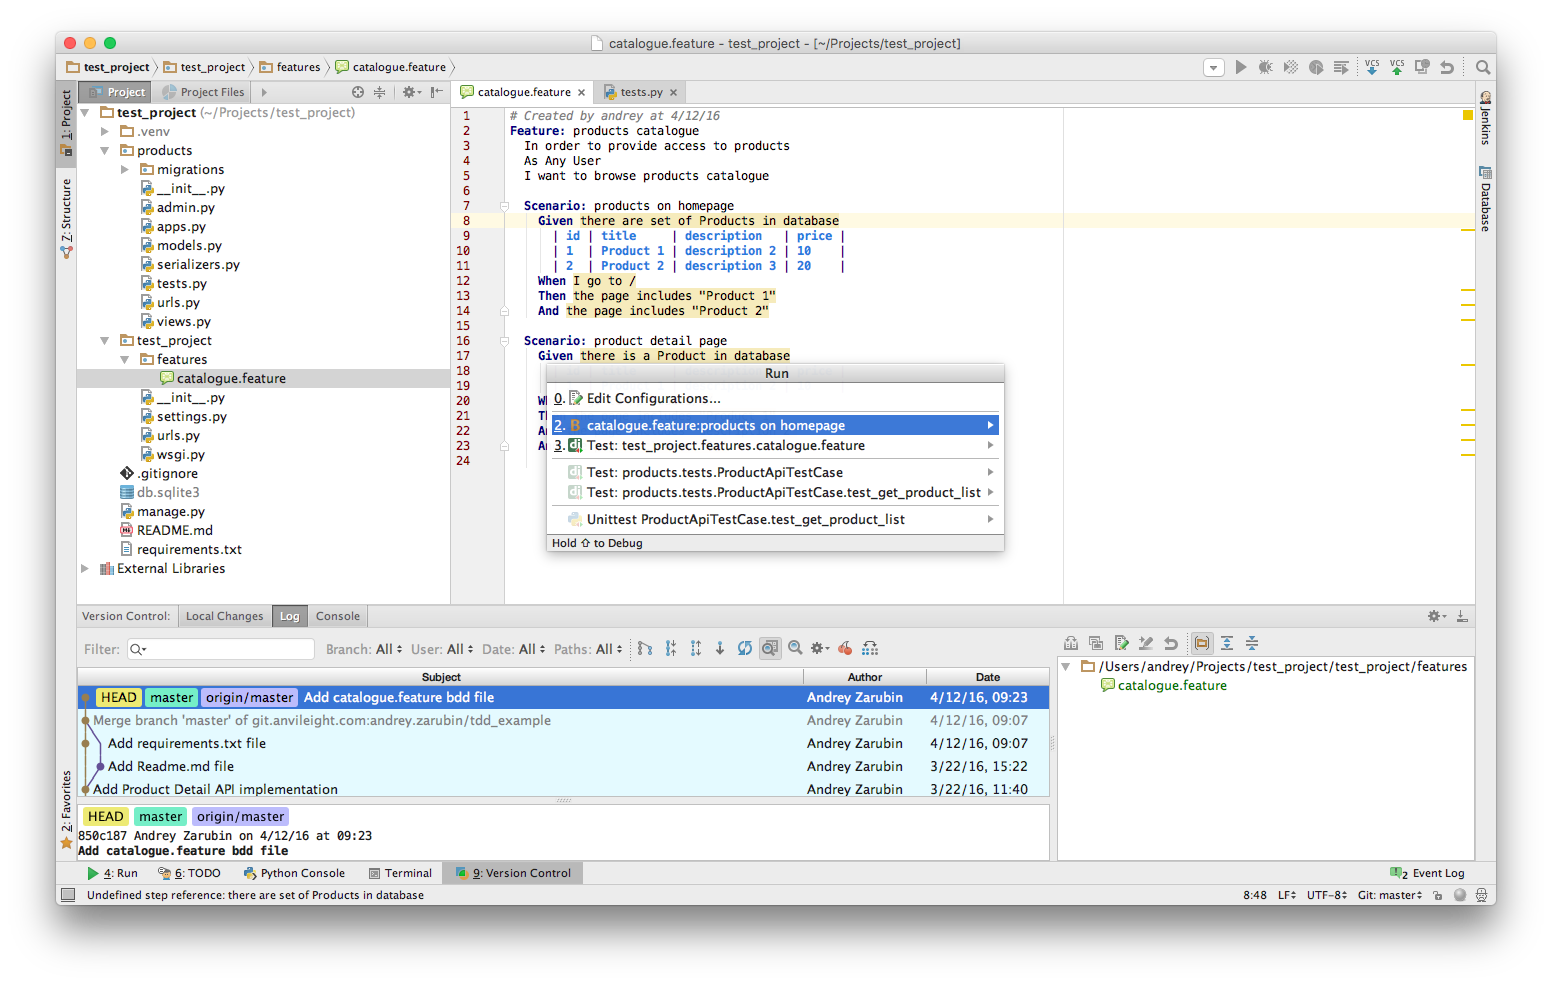 Running behave test with PycHarm